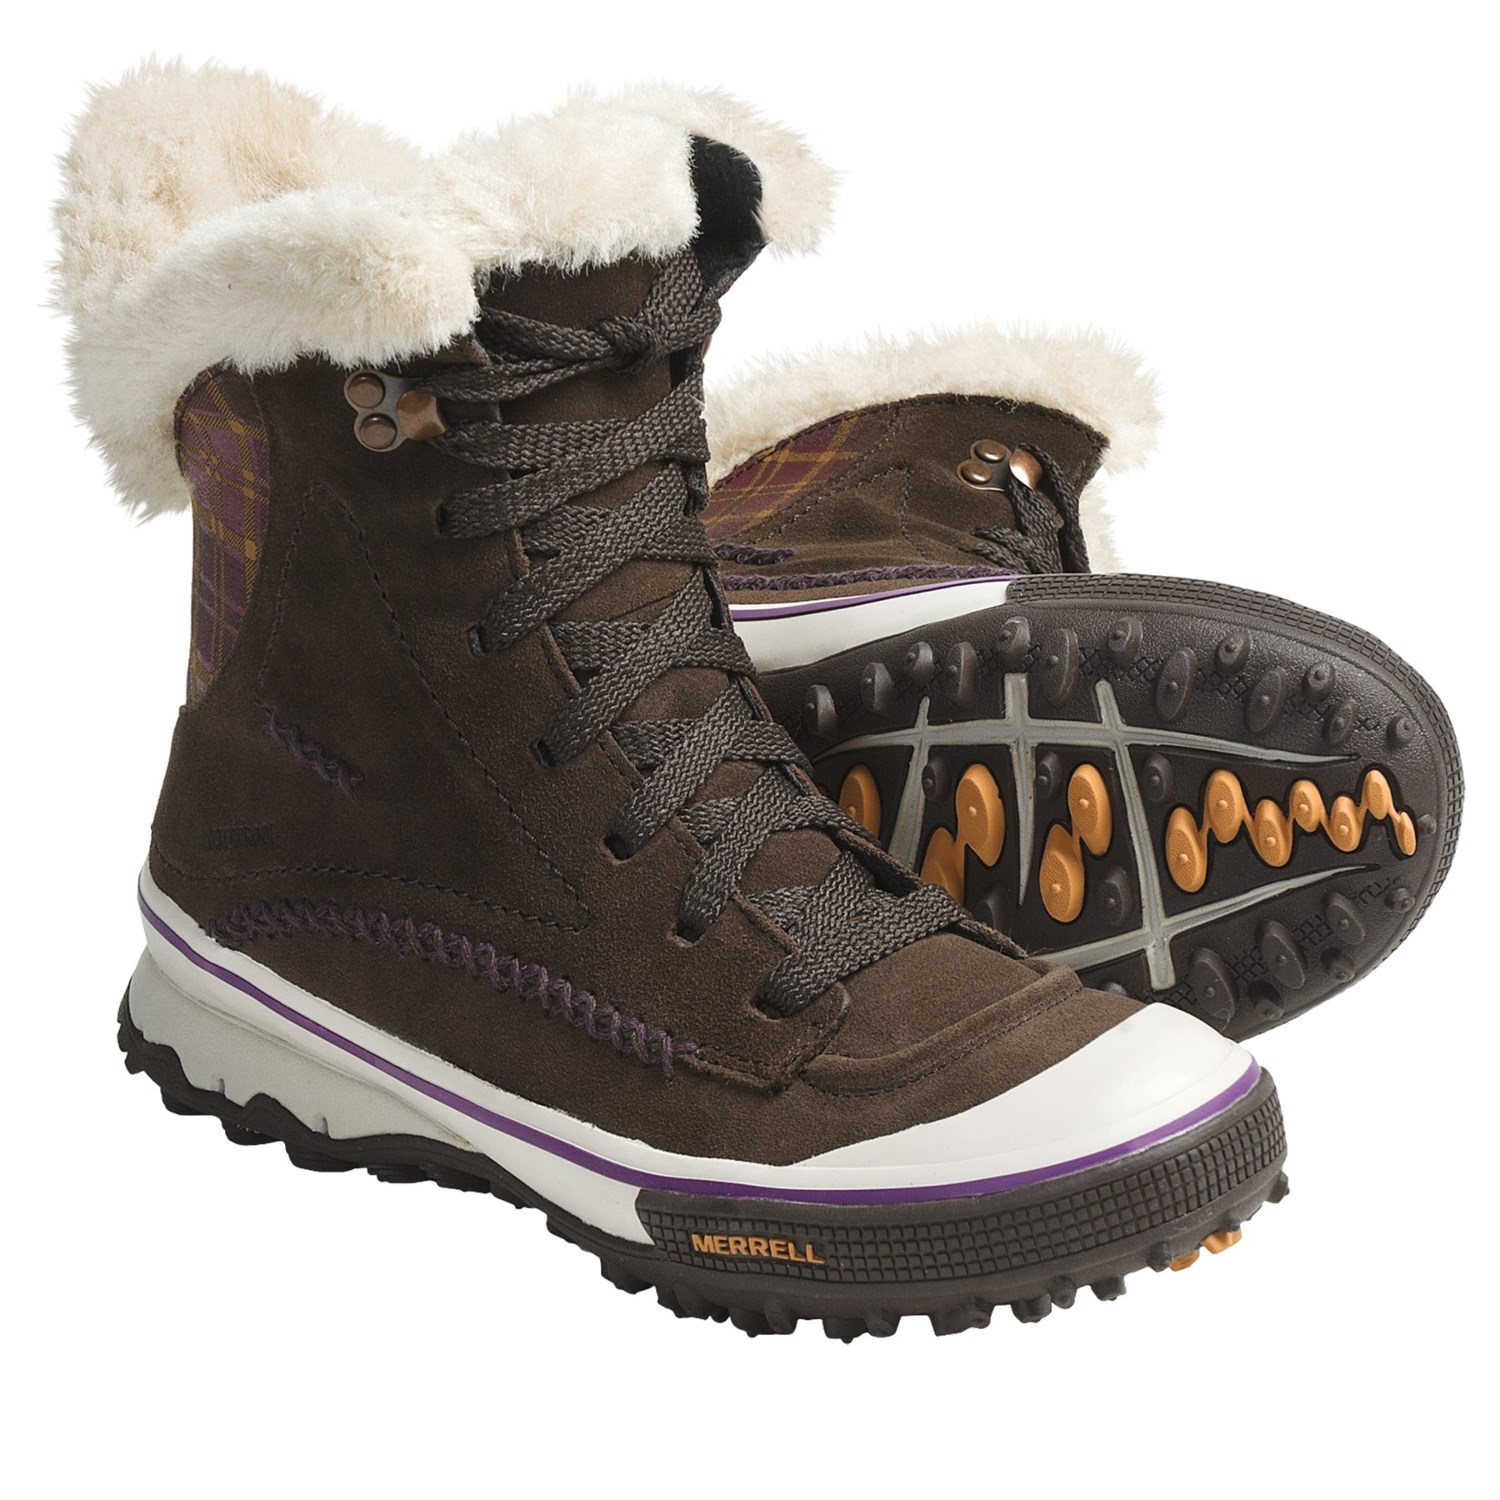 Waterproof Snow Boots Women - Cr Boot